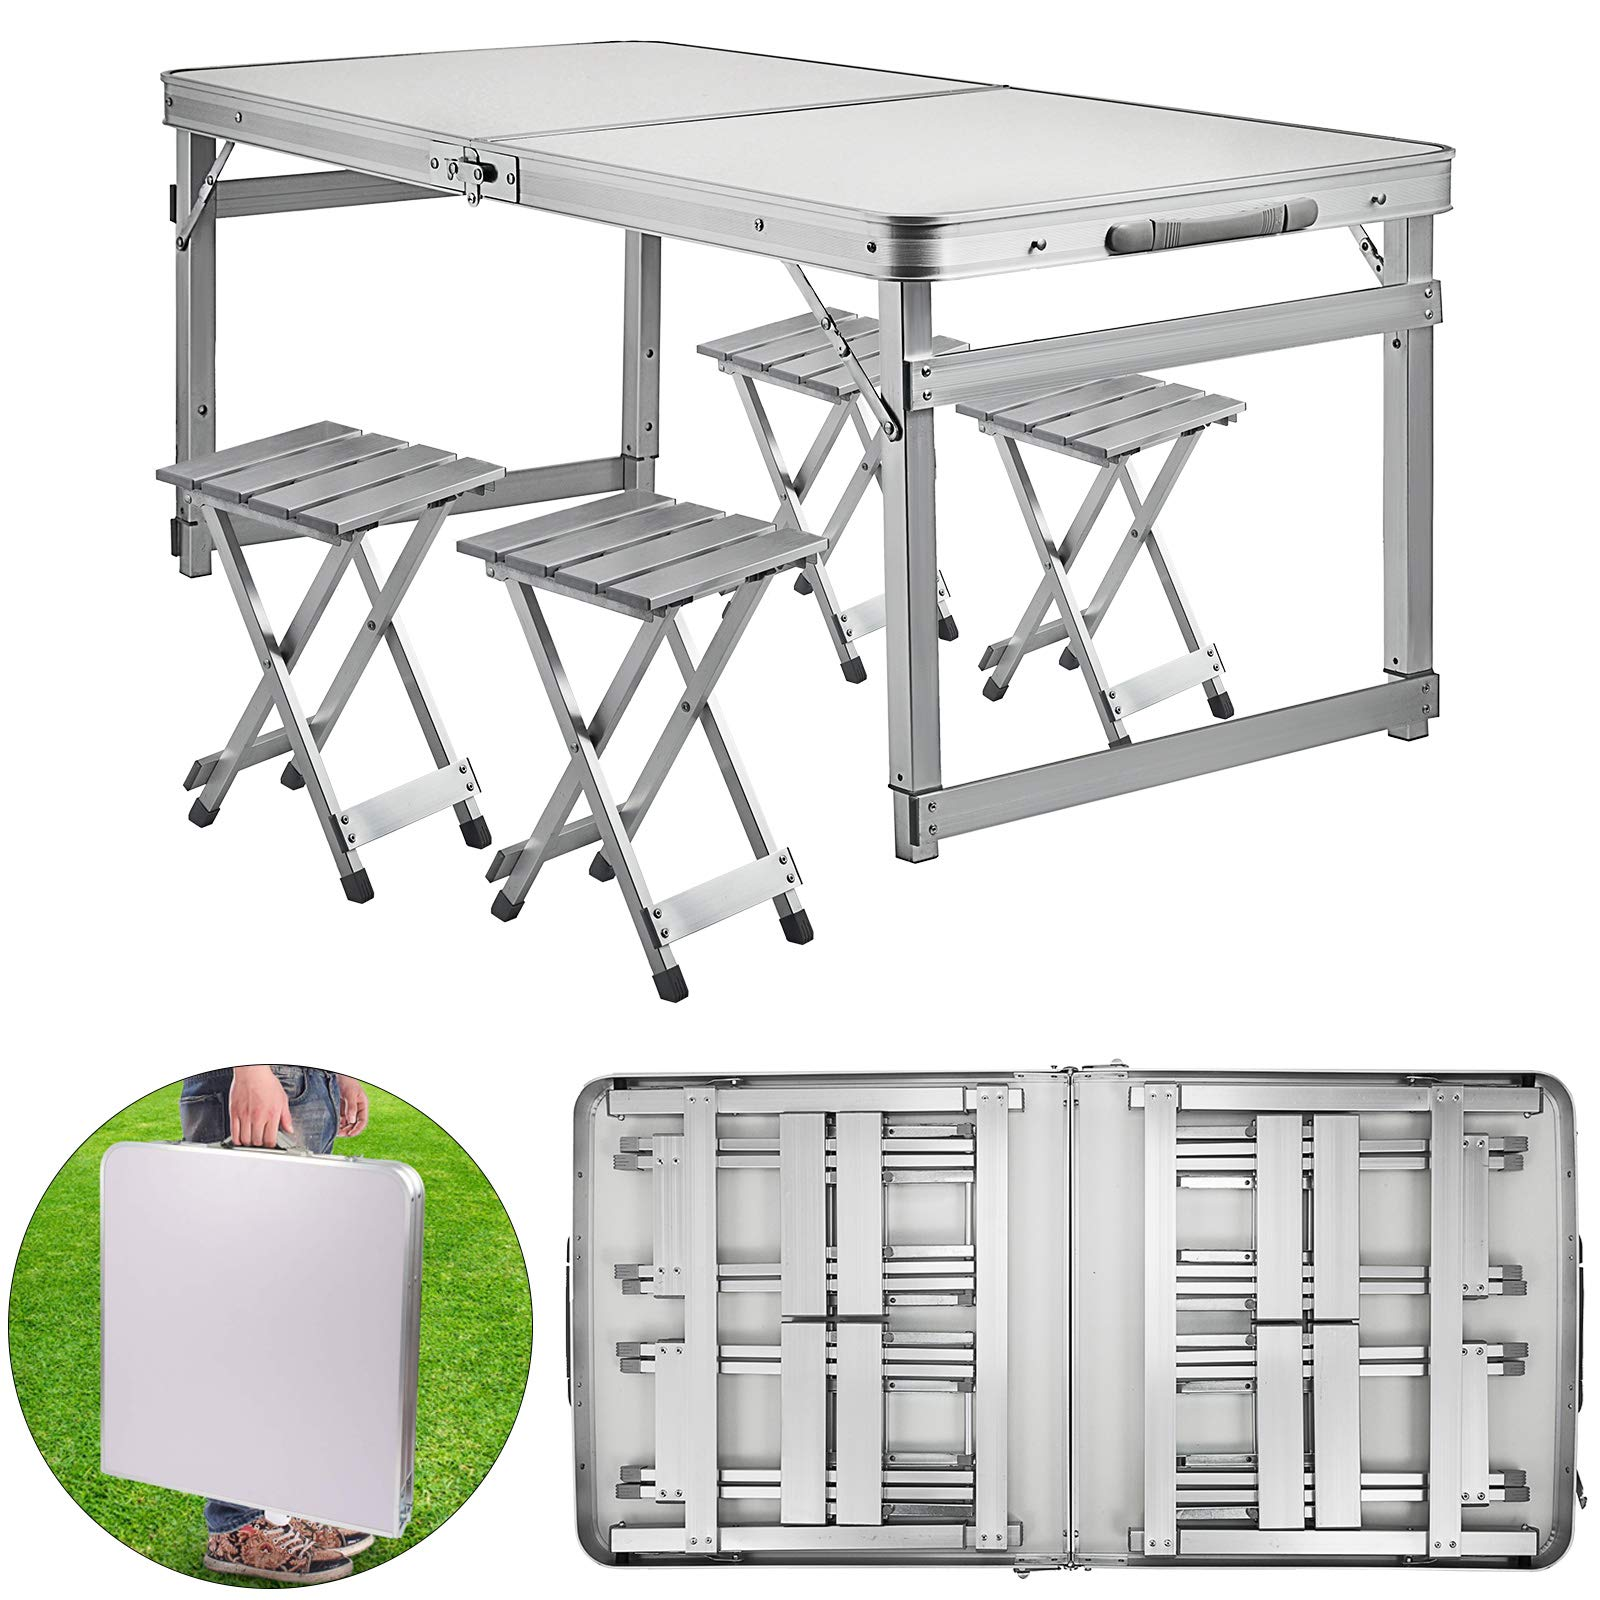 Happybuy Aluminum Folding Picnic Table with 4 Benches 4 Person Adjustable Height Portable Camping Table and Chairs Set for Office Garden Outdoor by Happybuy